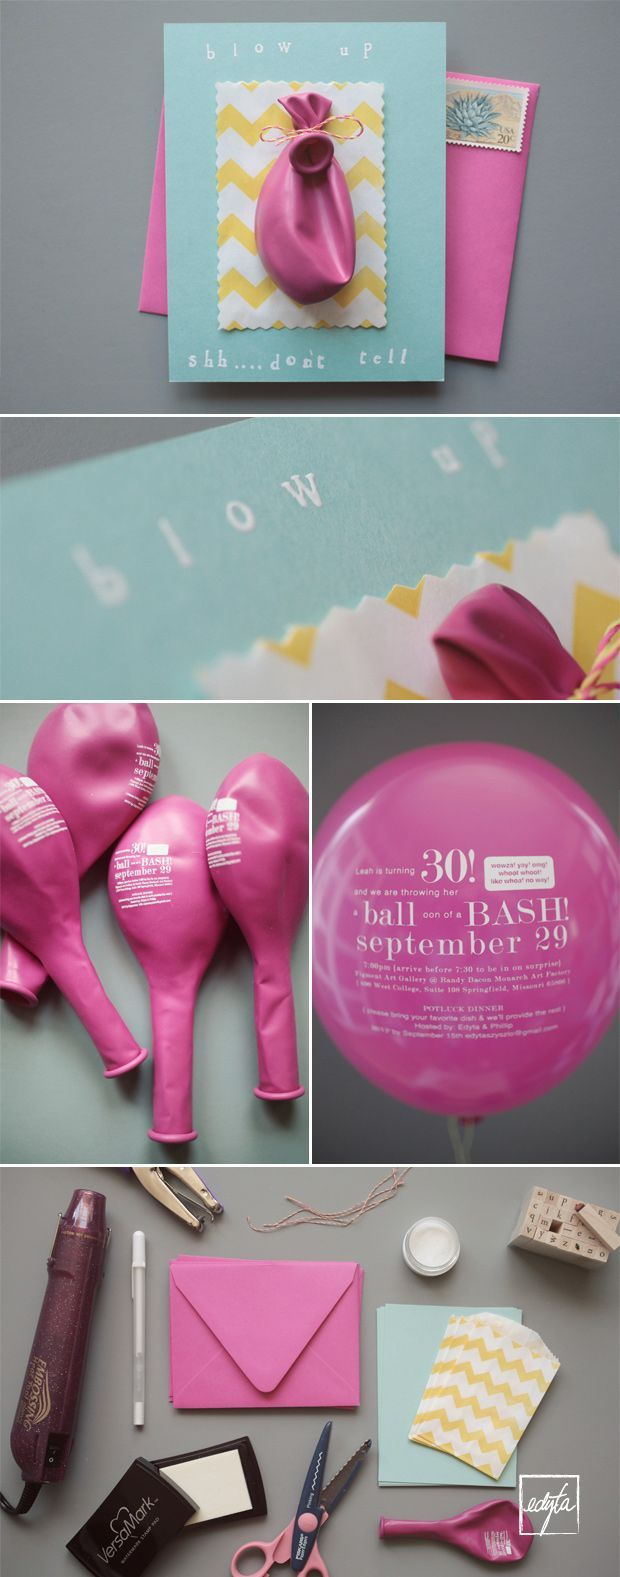 Such a lovely idea: have the invitation printed on a balloon so that the recipient has to blow the balloon up to read it. I might do this for a bachelorette or other party rather than a wedding!